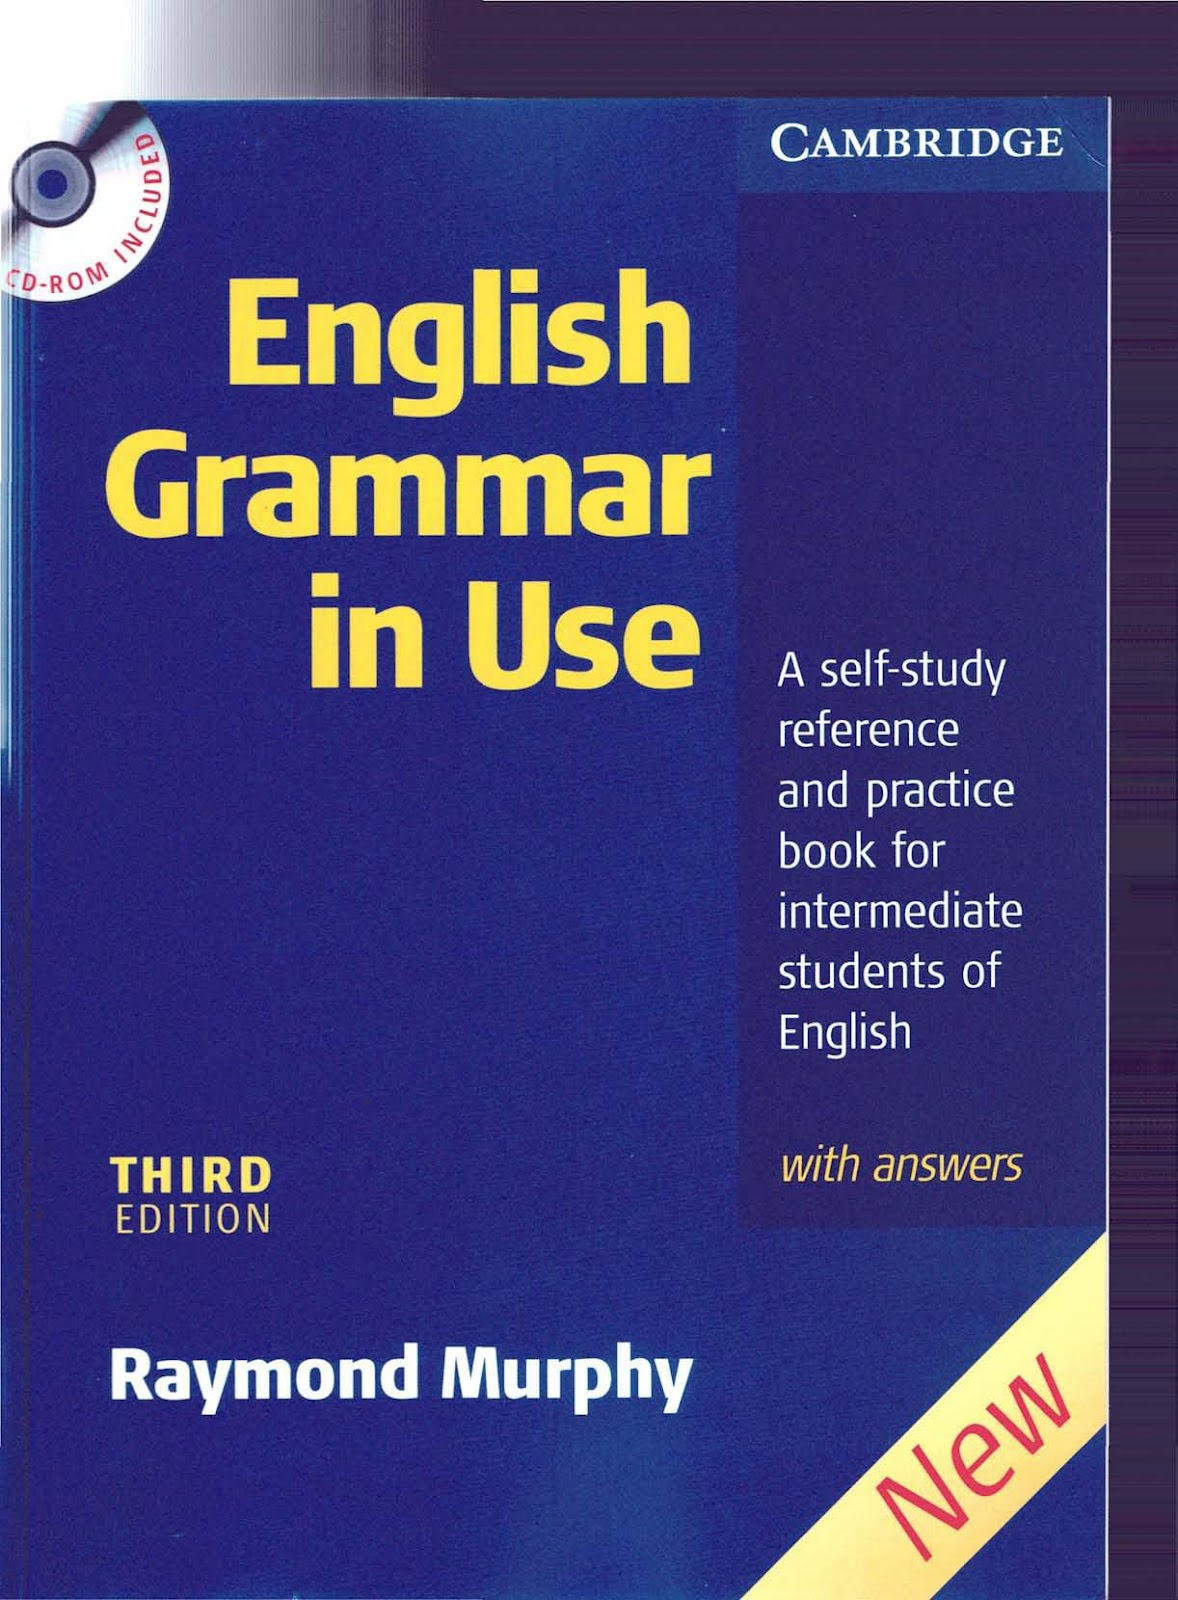 English Grammar in Use by Raymond Murphy PDF Book Download ...